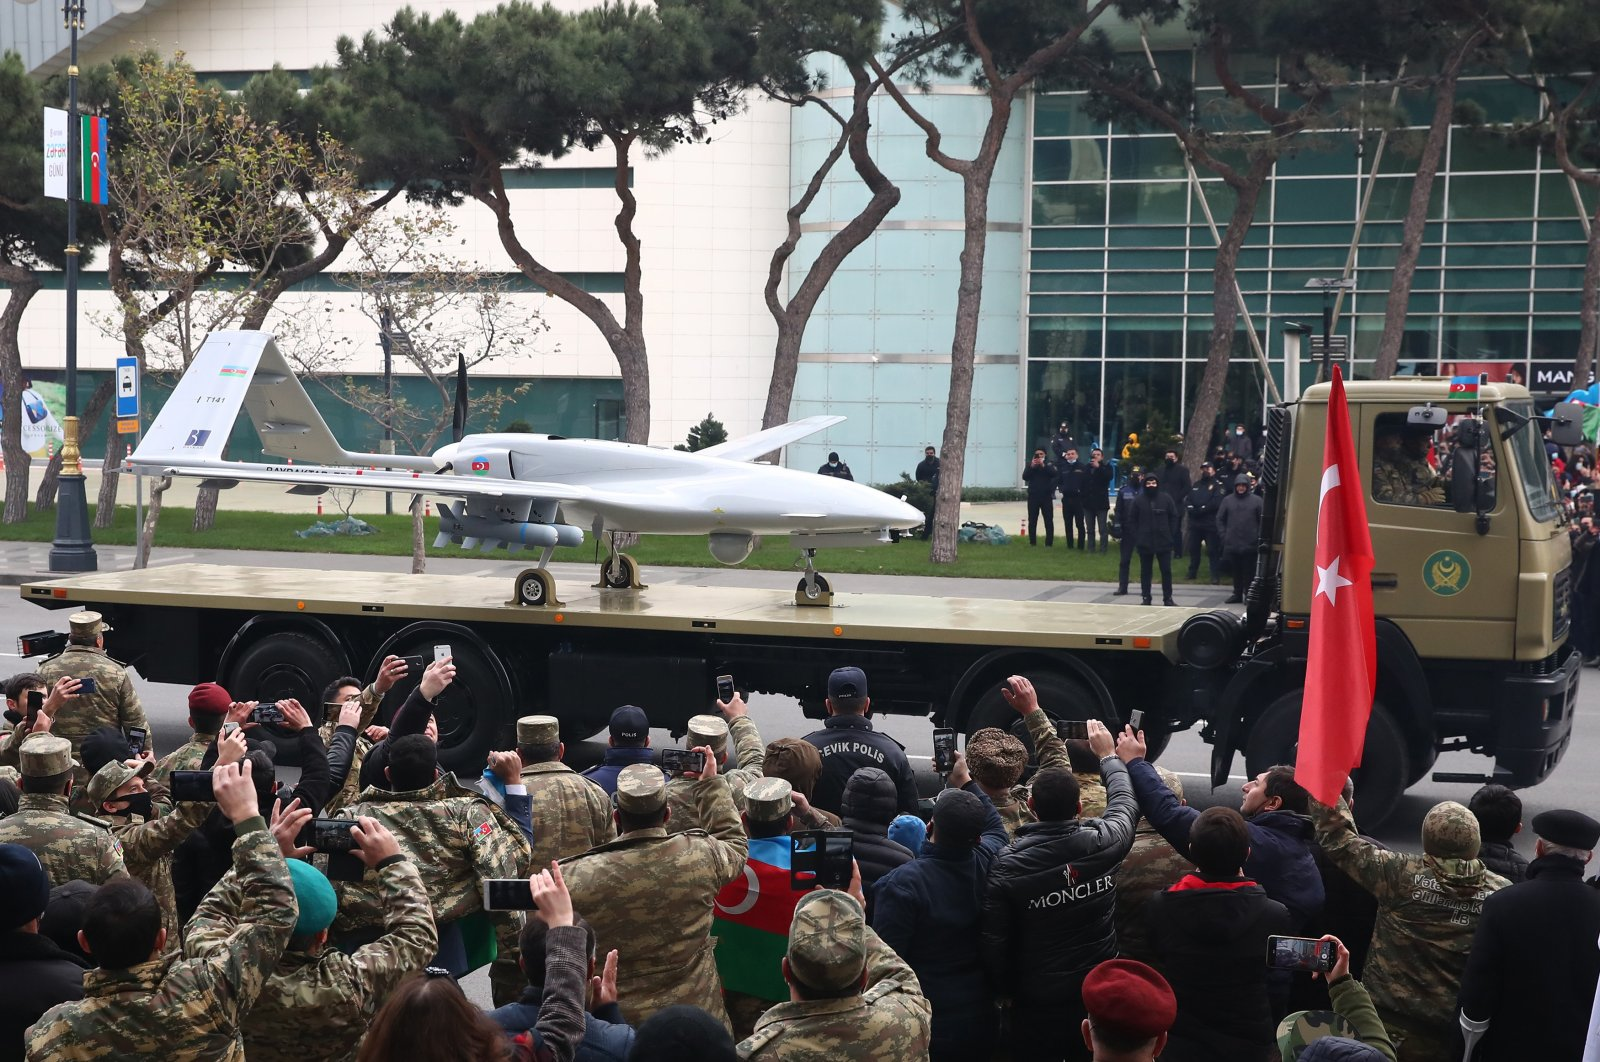 A Bayraktar TB2 unmanned combat reconnaissance aerial vehicle manufactured by Turkey's Baykar Makina takes part in a military parade marking the end of the Nagorno Karabakh military conflict, Baku, Azerbaijan, Dec. 10, 2020. (Reuters Photo)